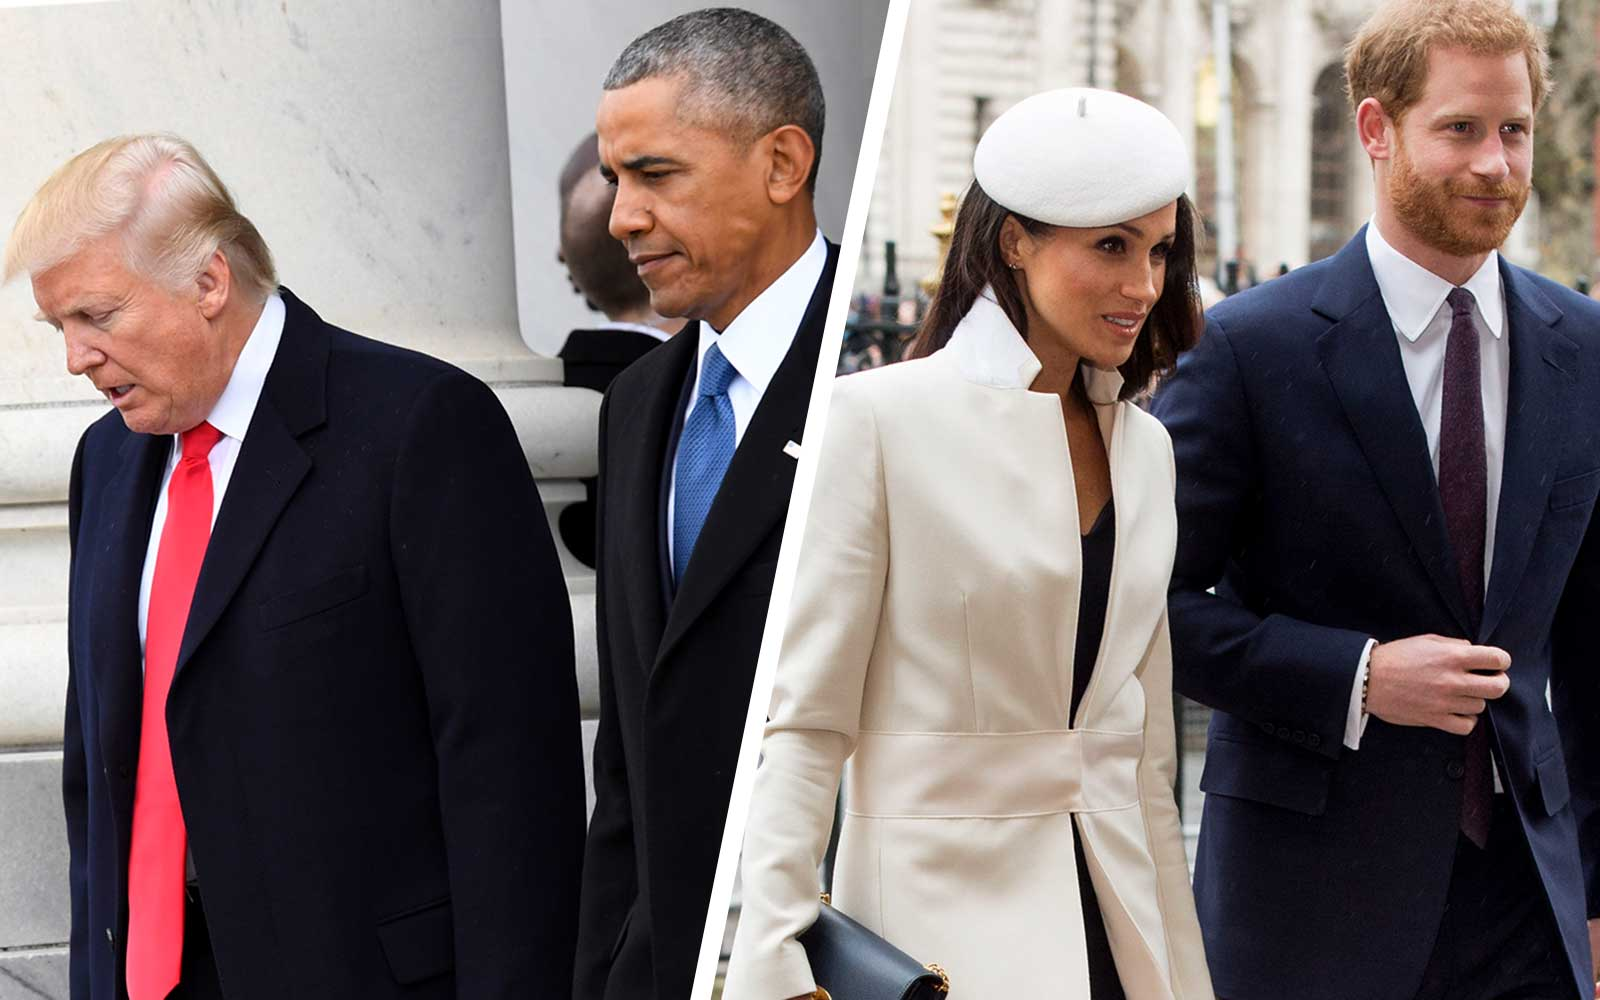 Donald Trump, Barack Obama, Meghan Markle and Prince Harry